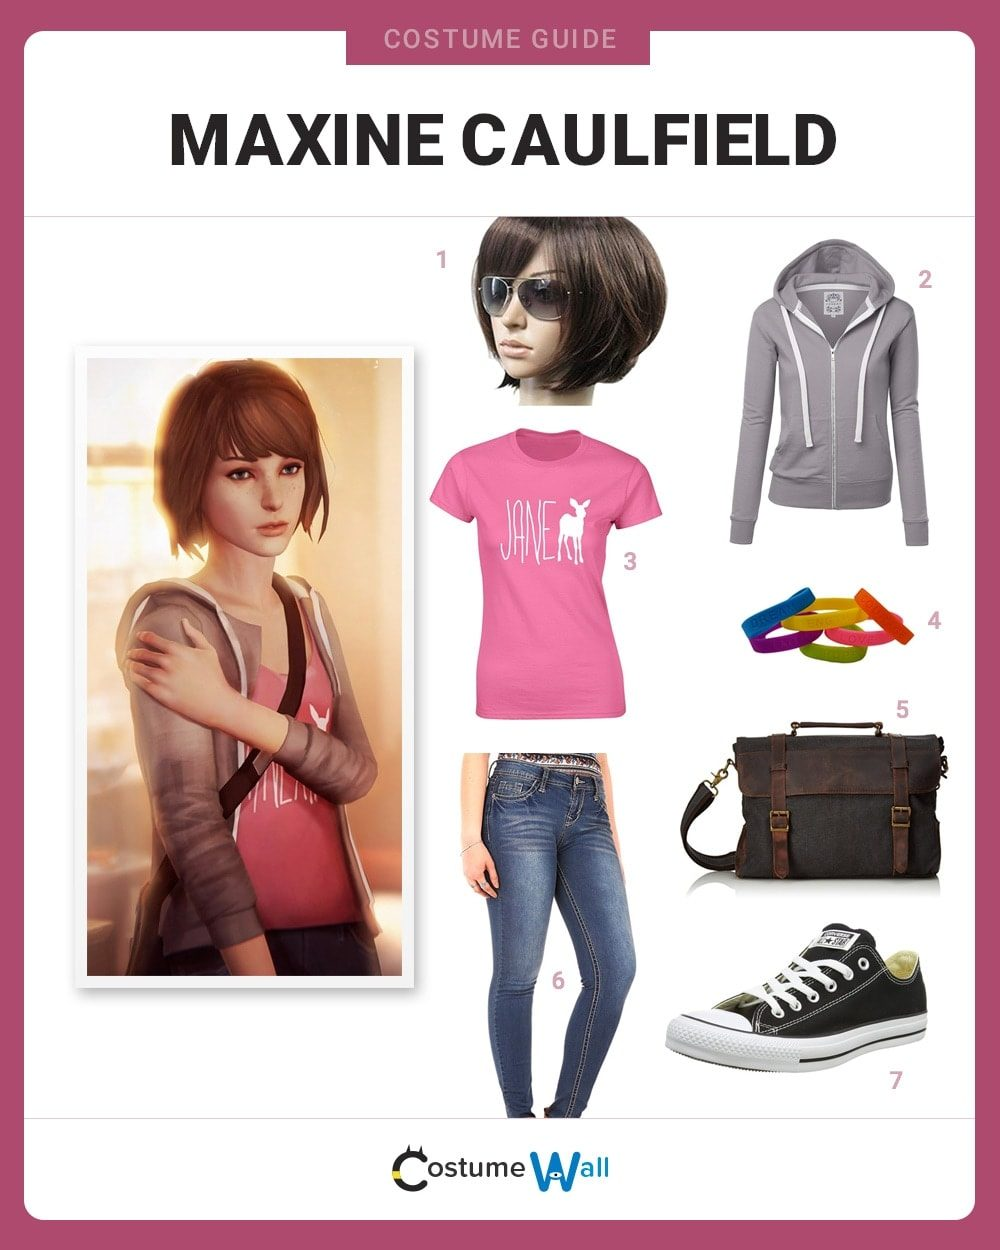 Maxine Caulfield Costume Guide